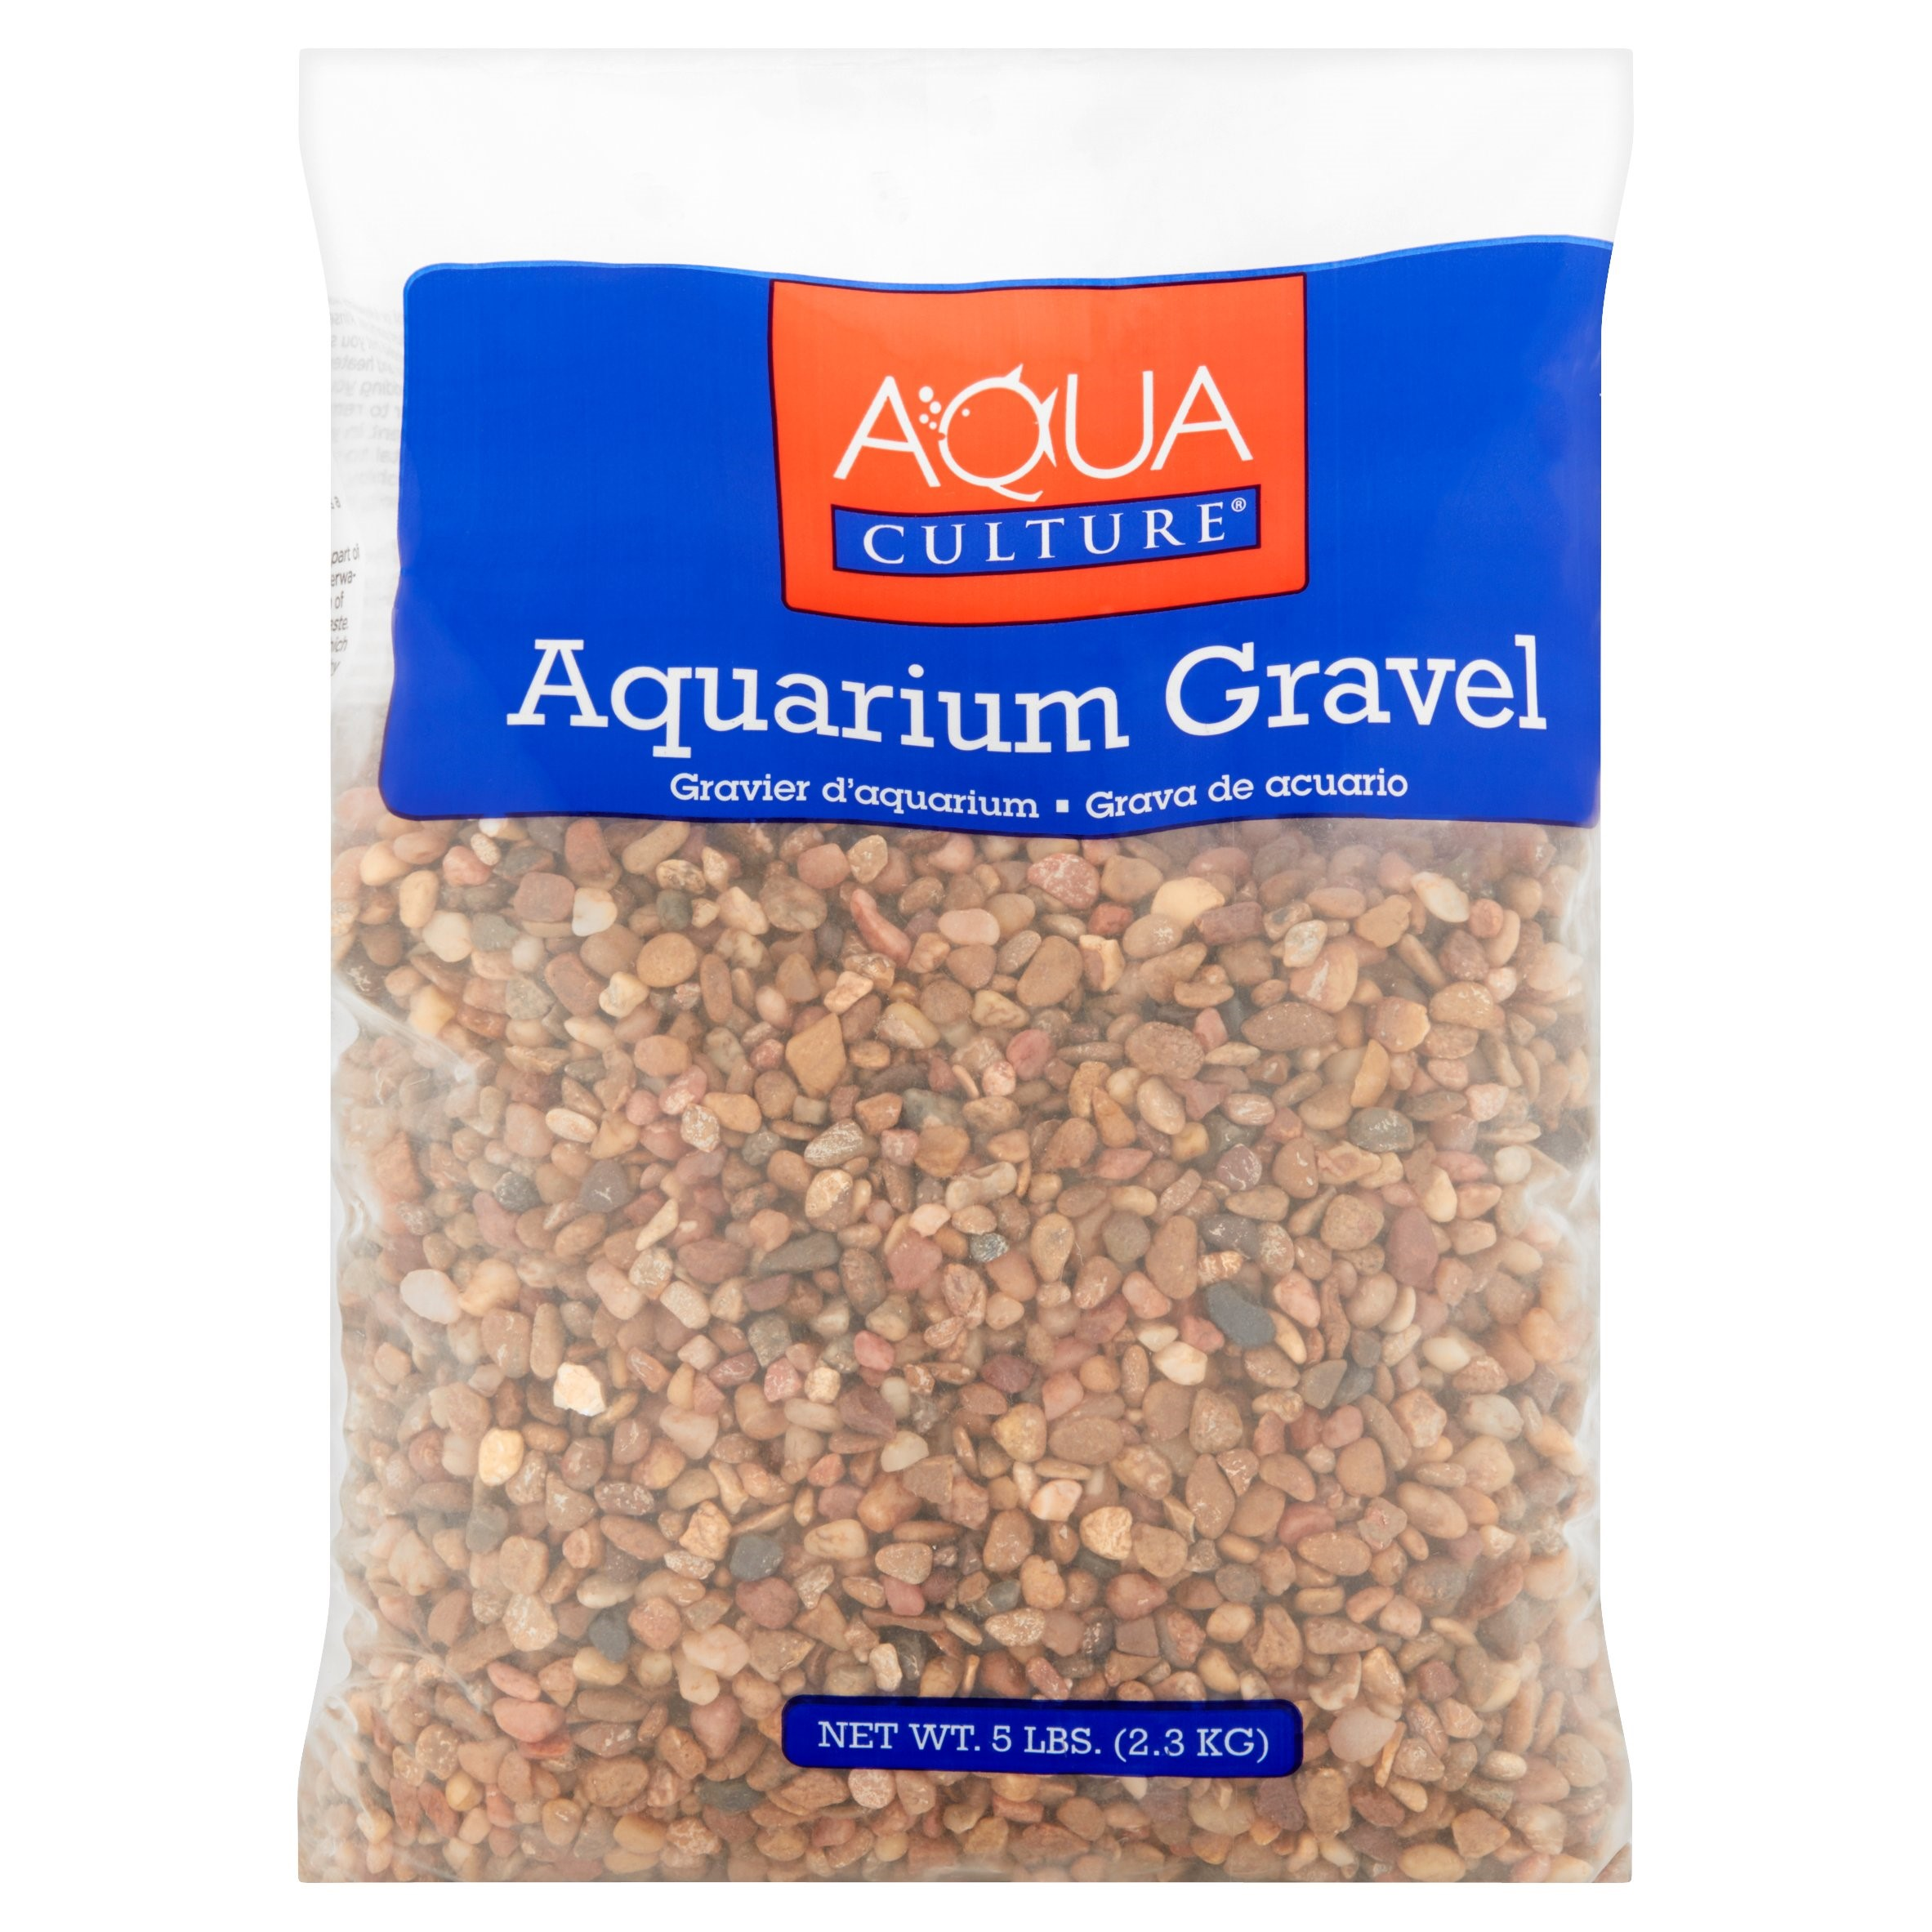 Aqua Culture Small Pebbles Neutral Aquarium Gravel, 5 lb